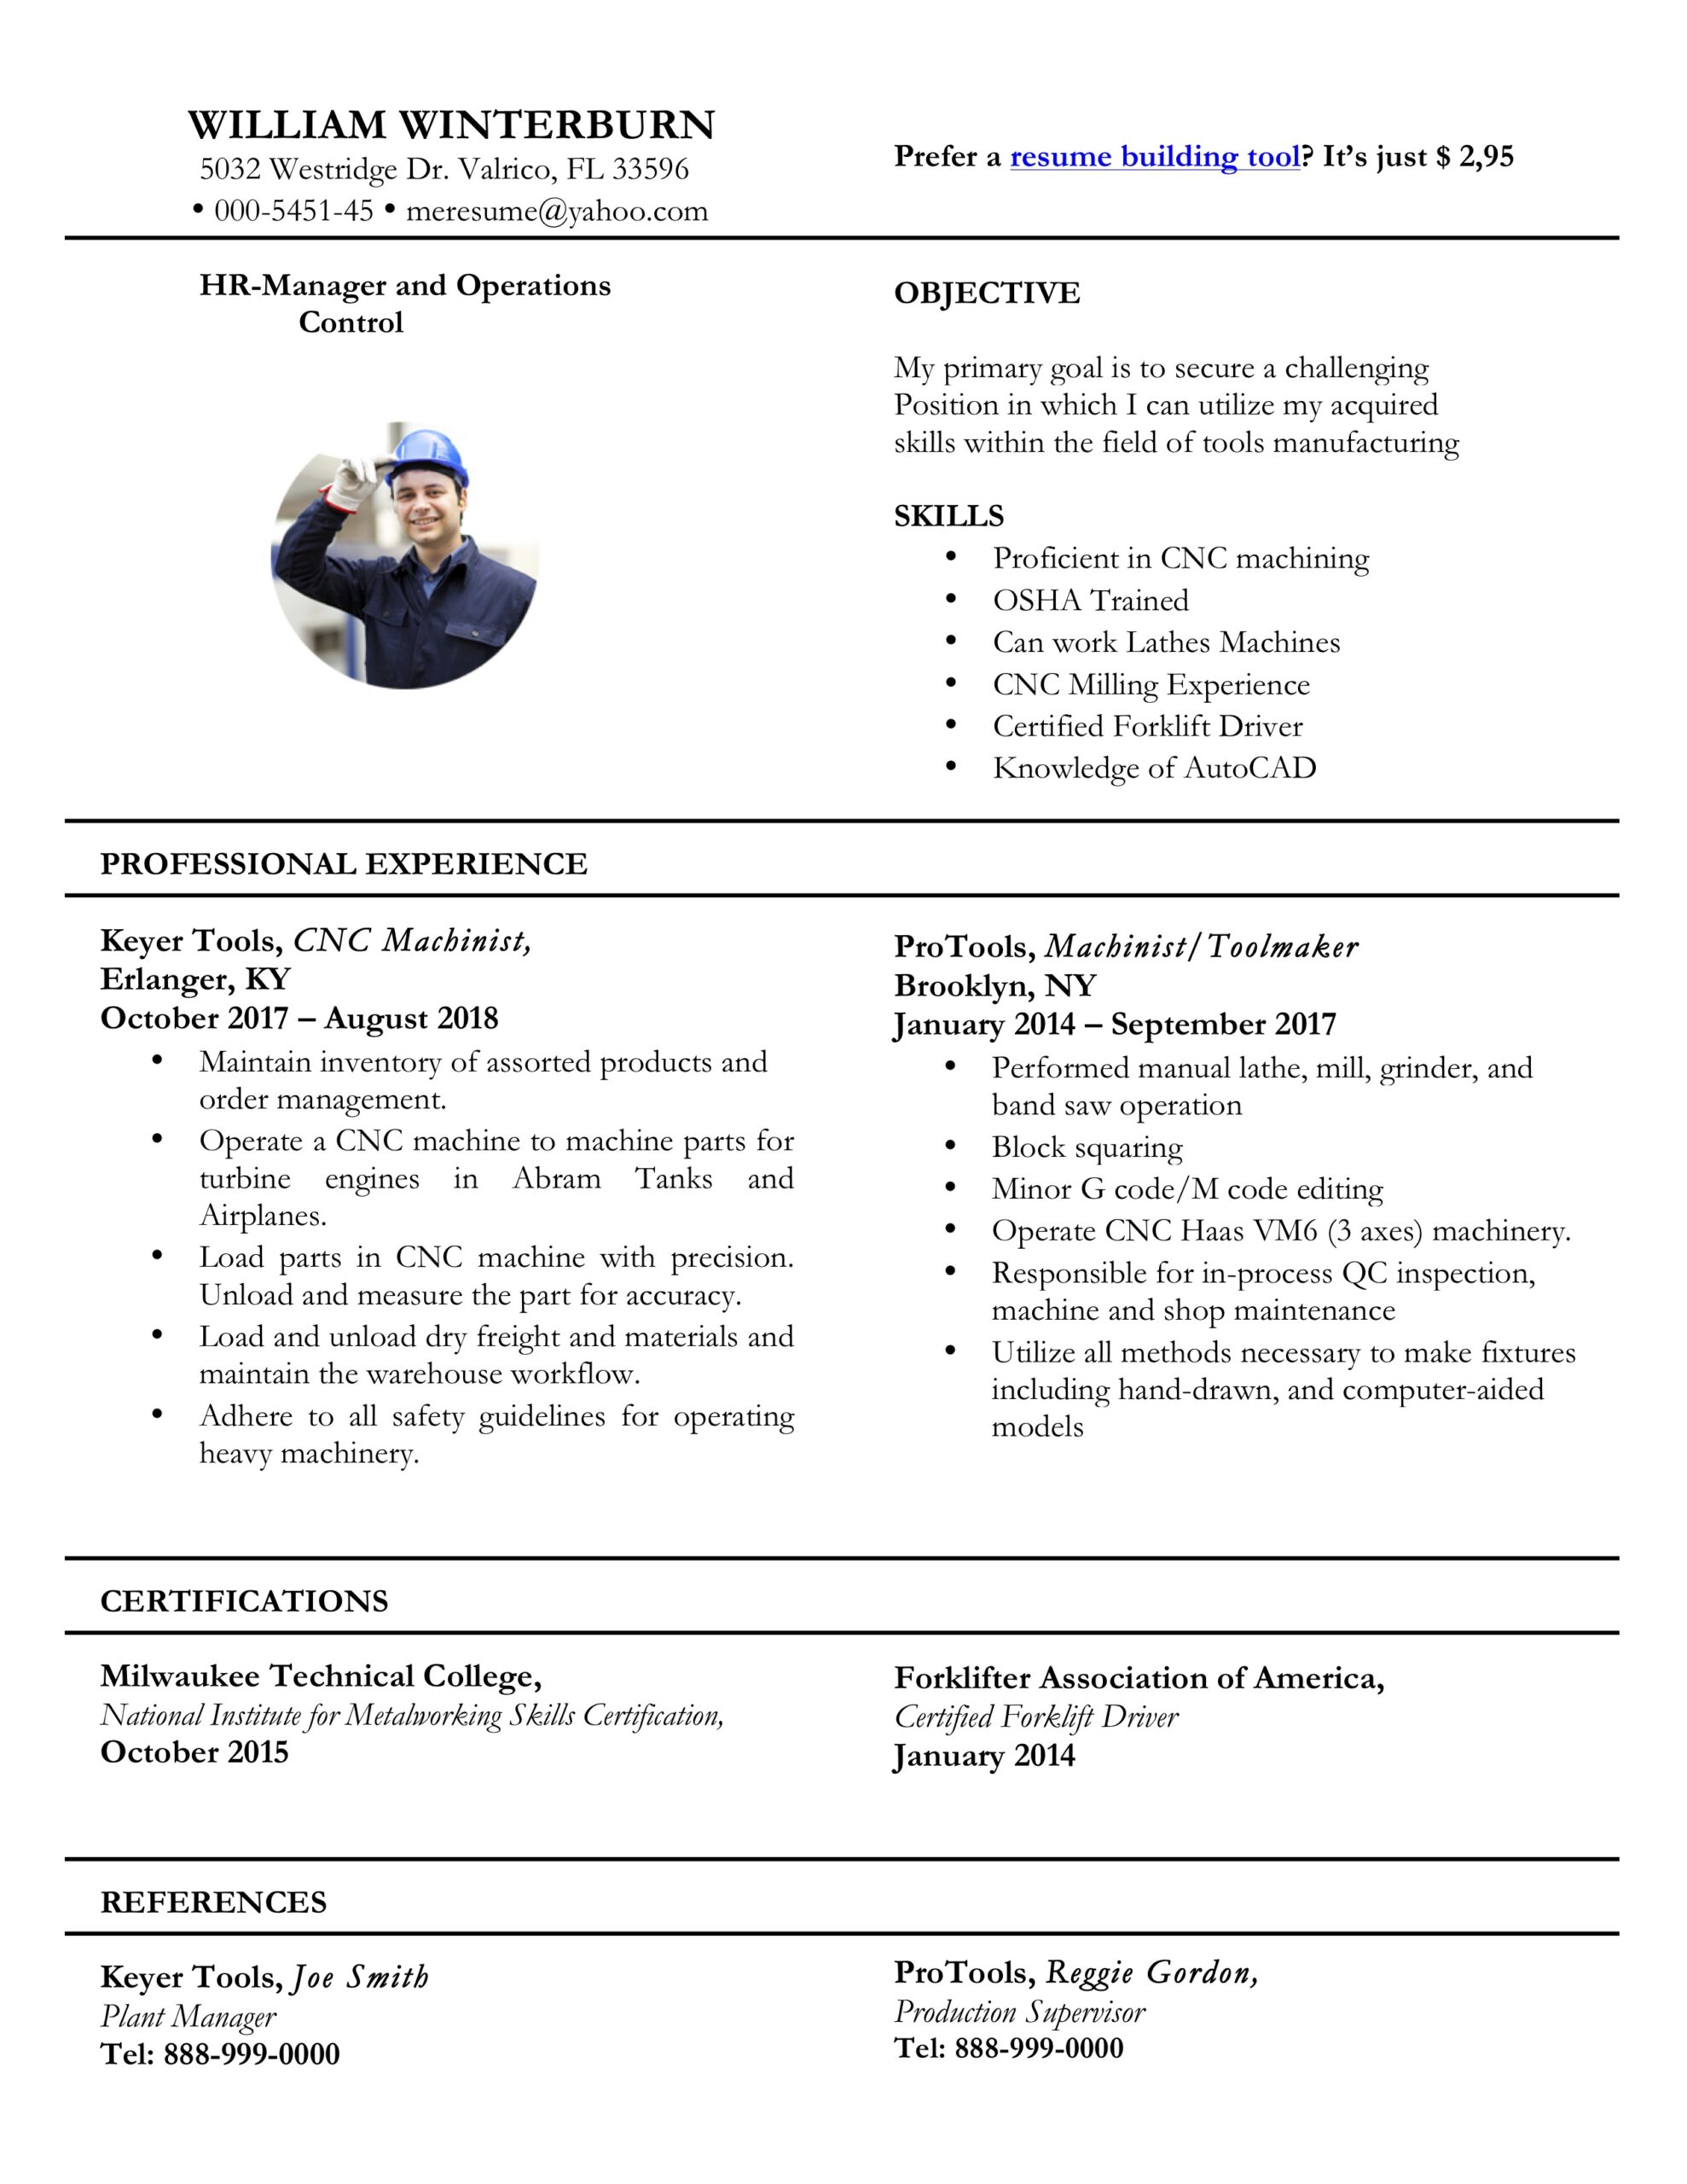 resume templates pdf word free downloads and guides format or template structure for Resume Resume Format Pdf Or Word